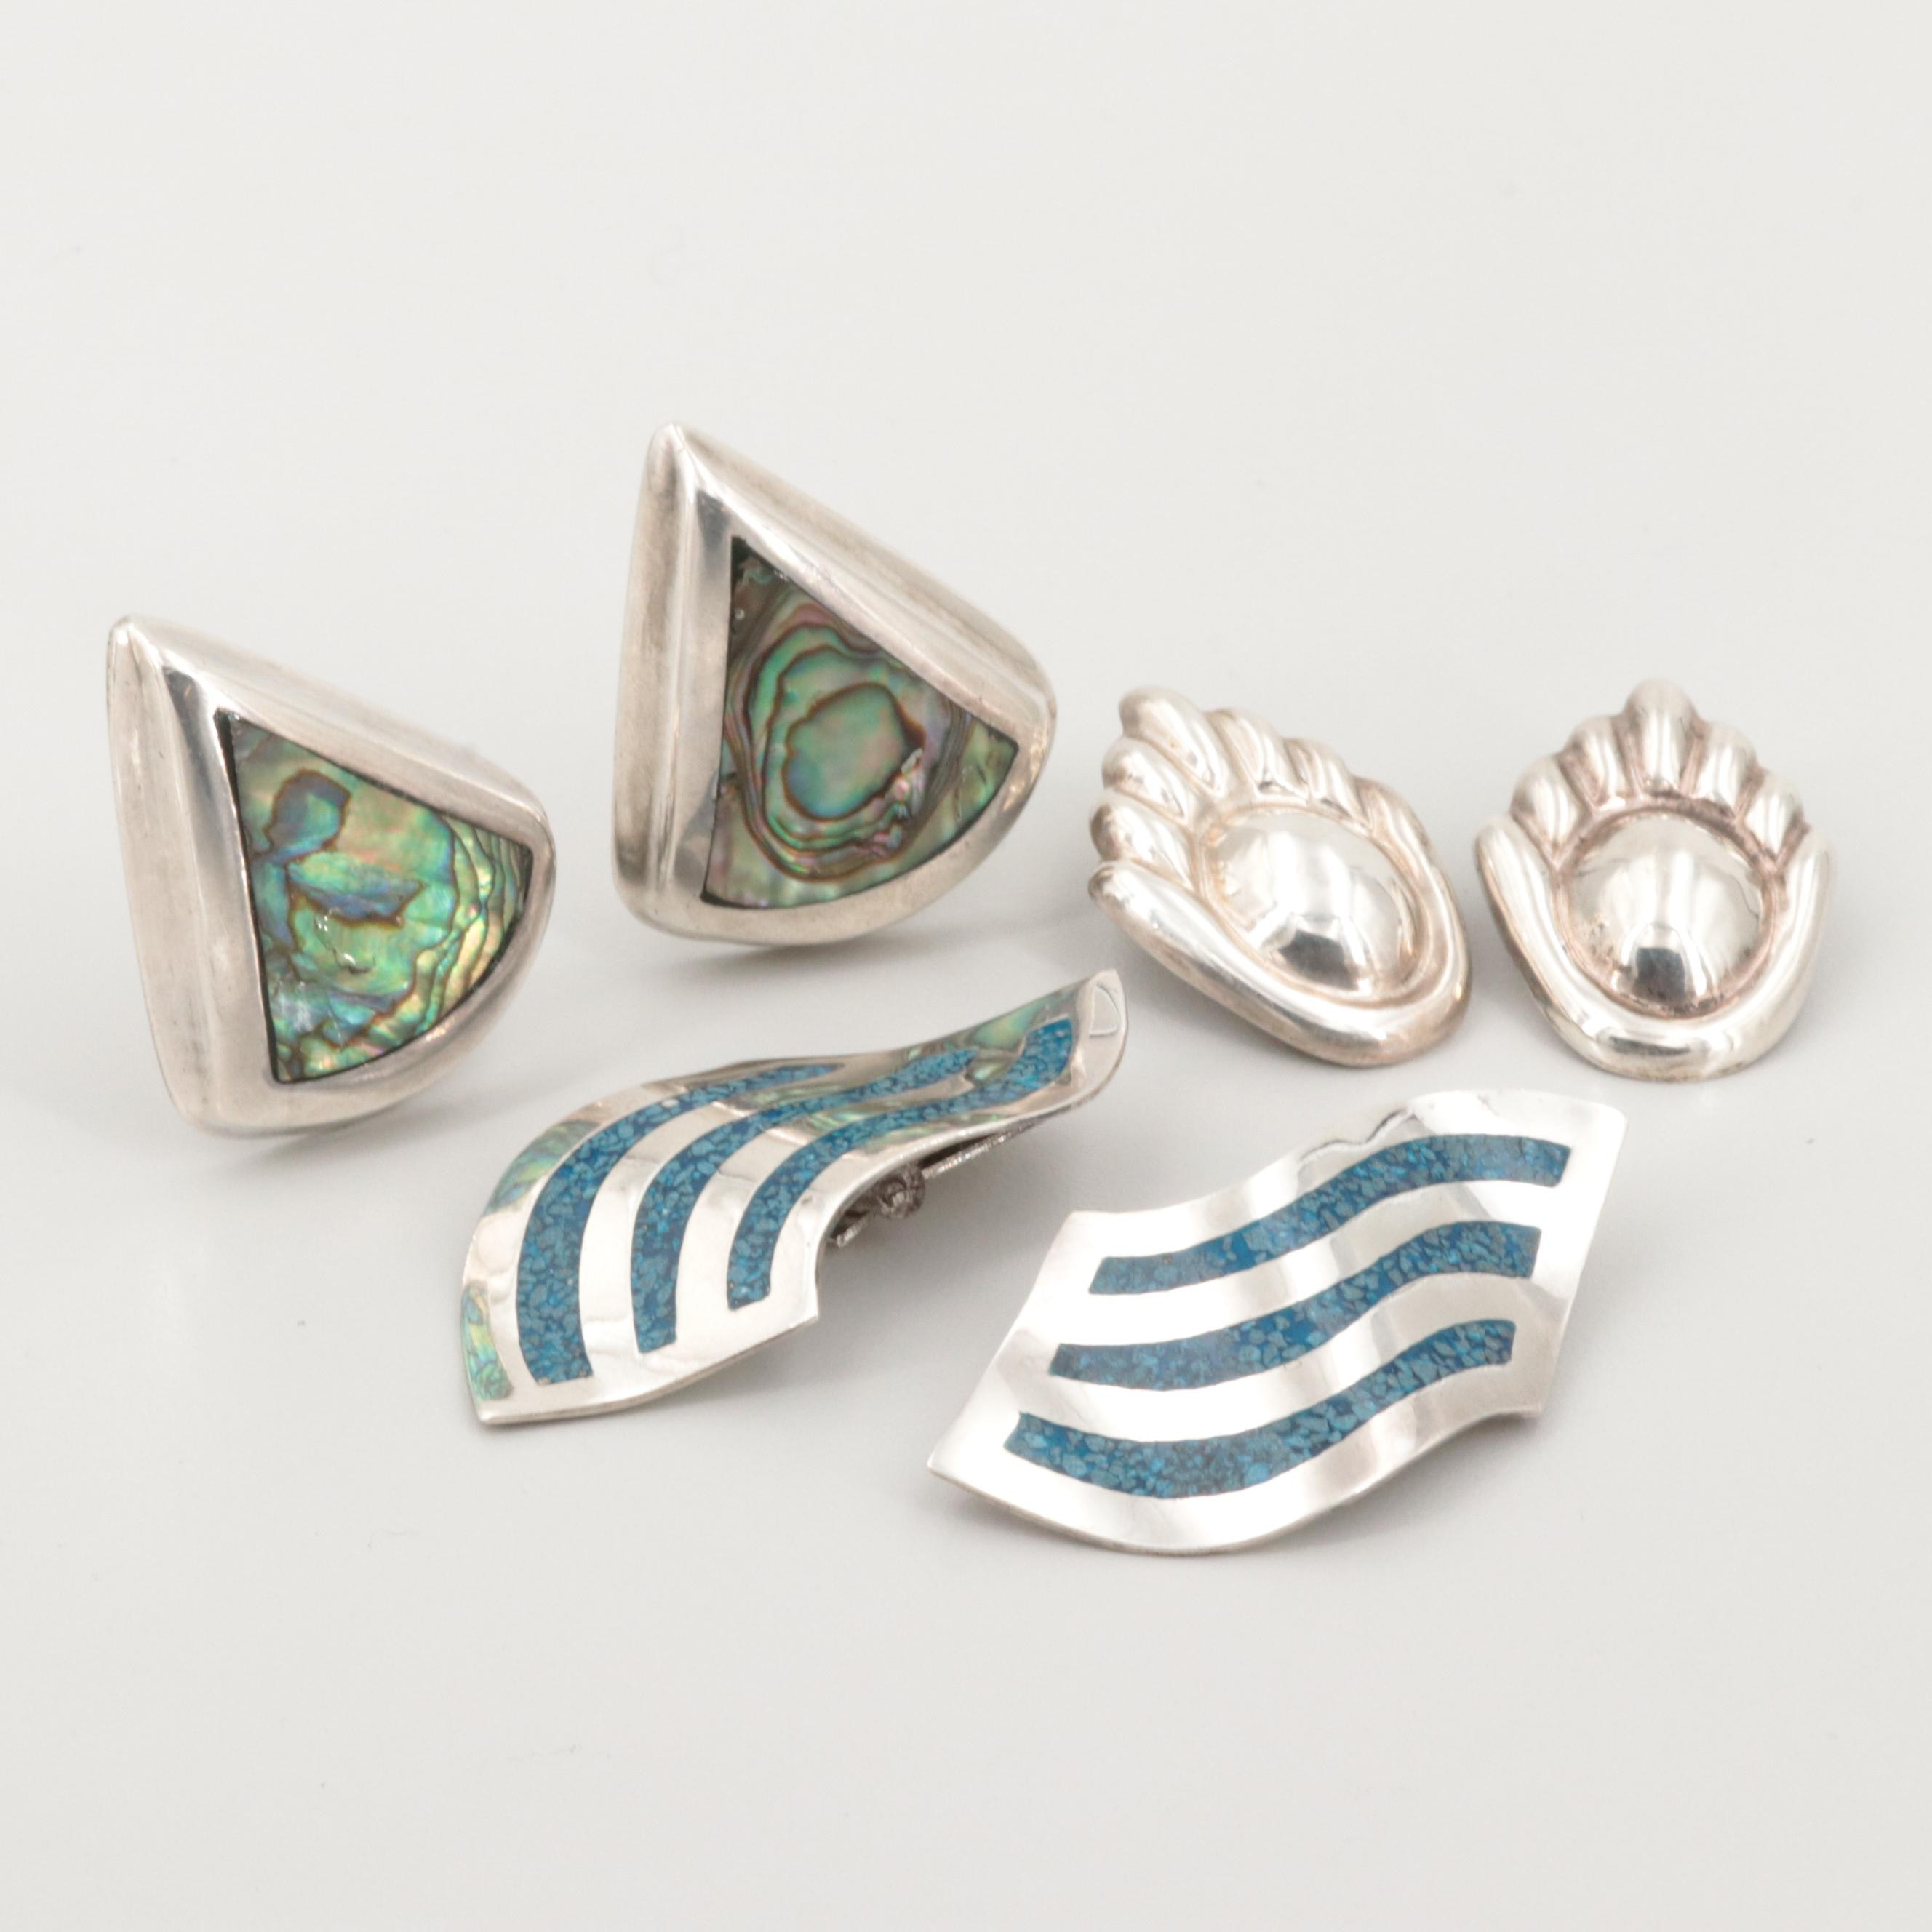 Vintage Mexican Sterling Silver Abalone and Chip Stone in Resin Earrings